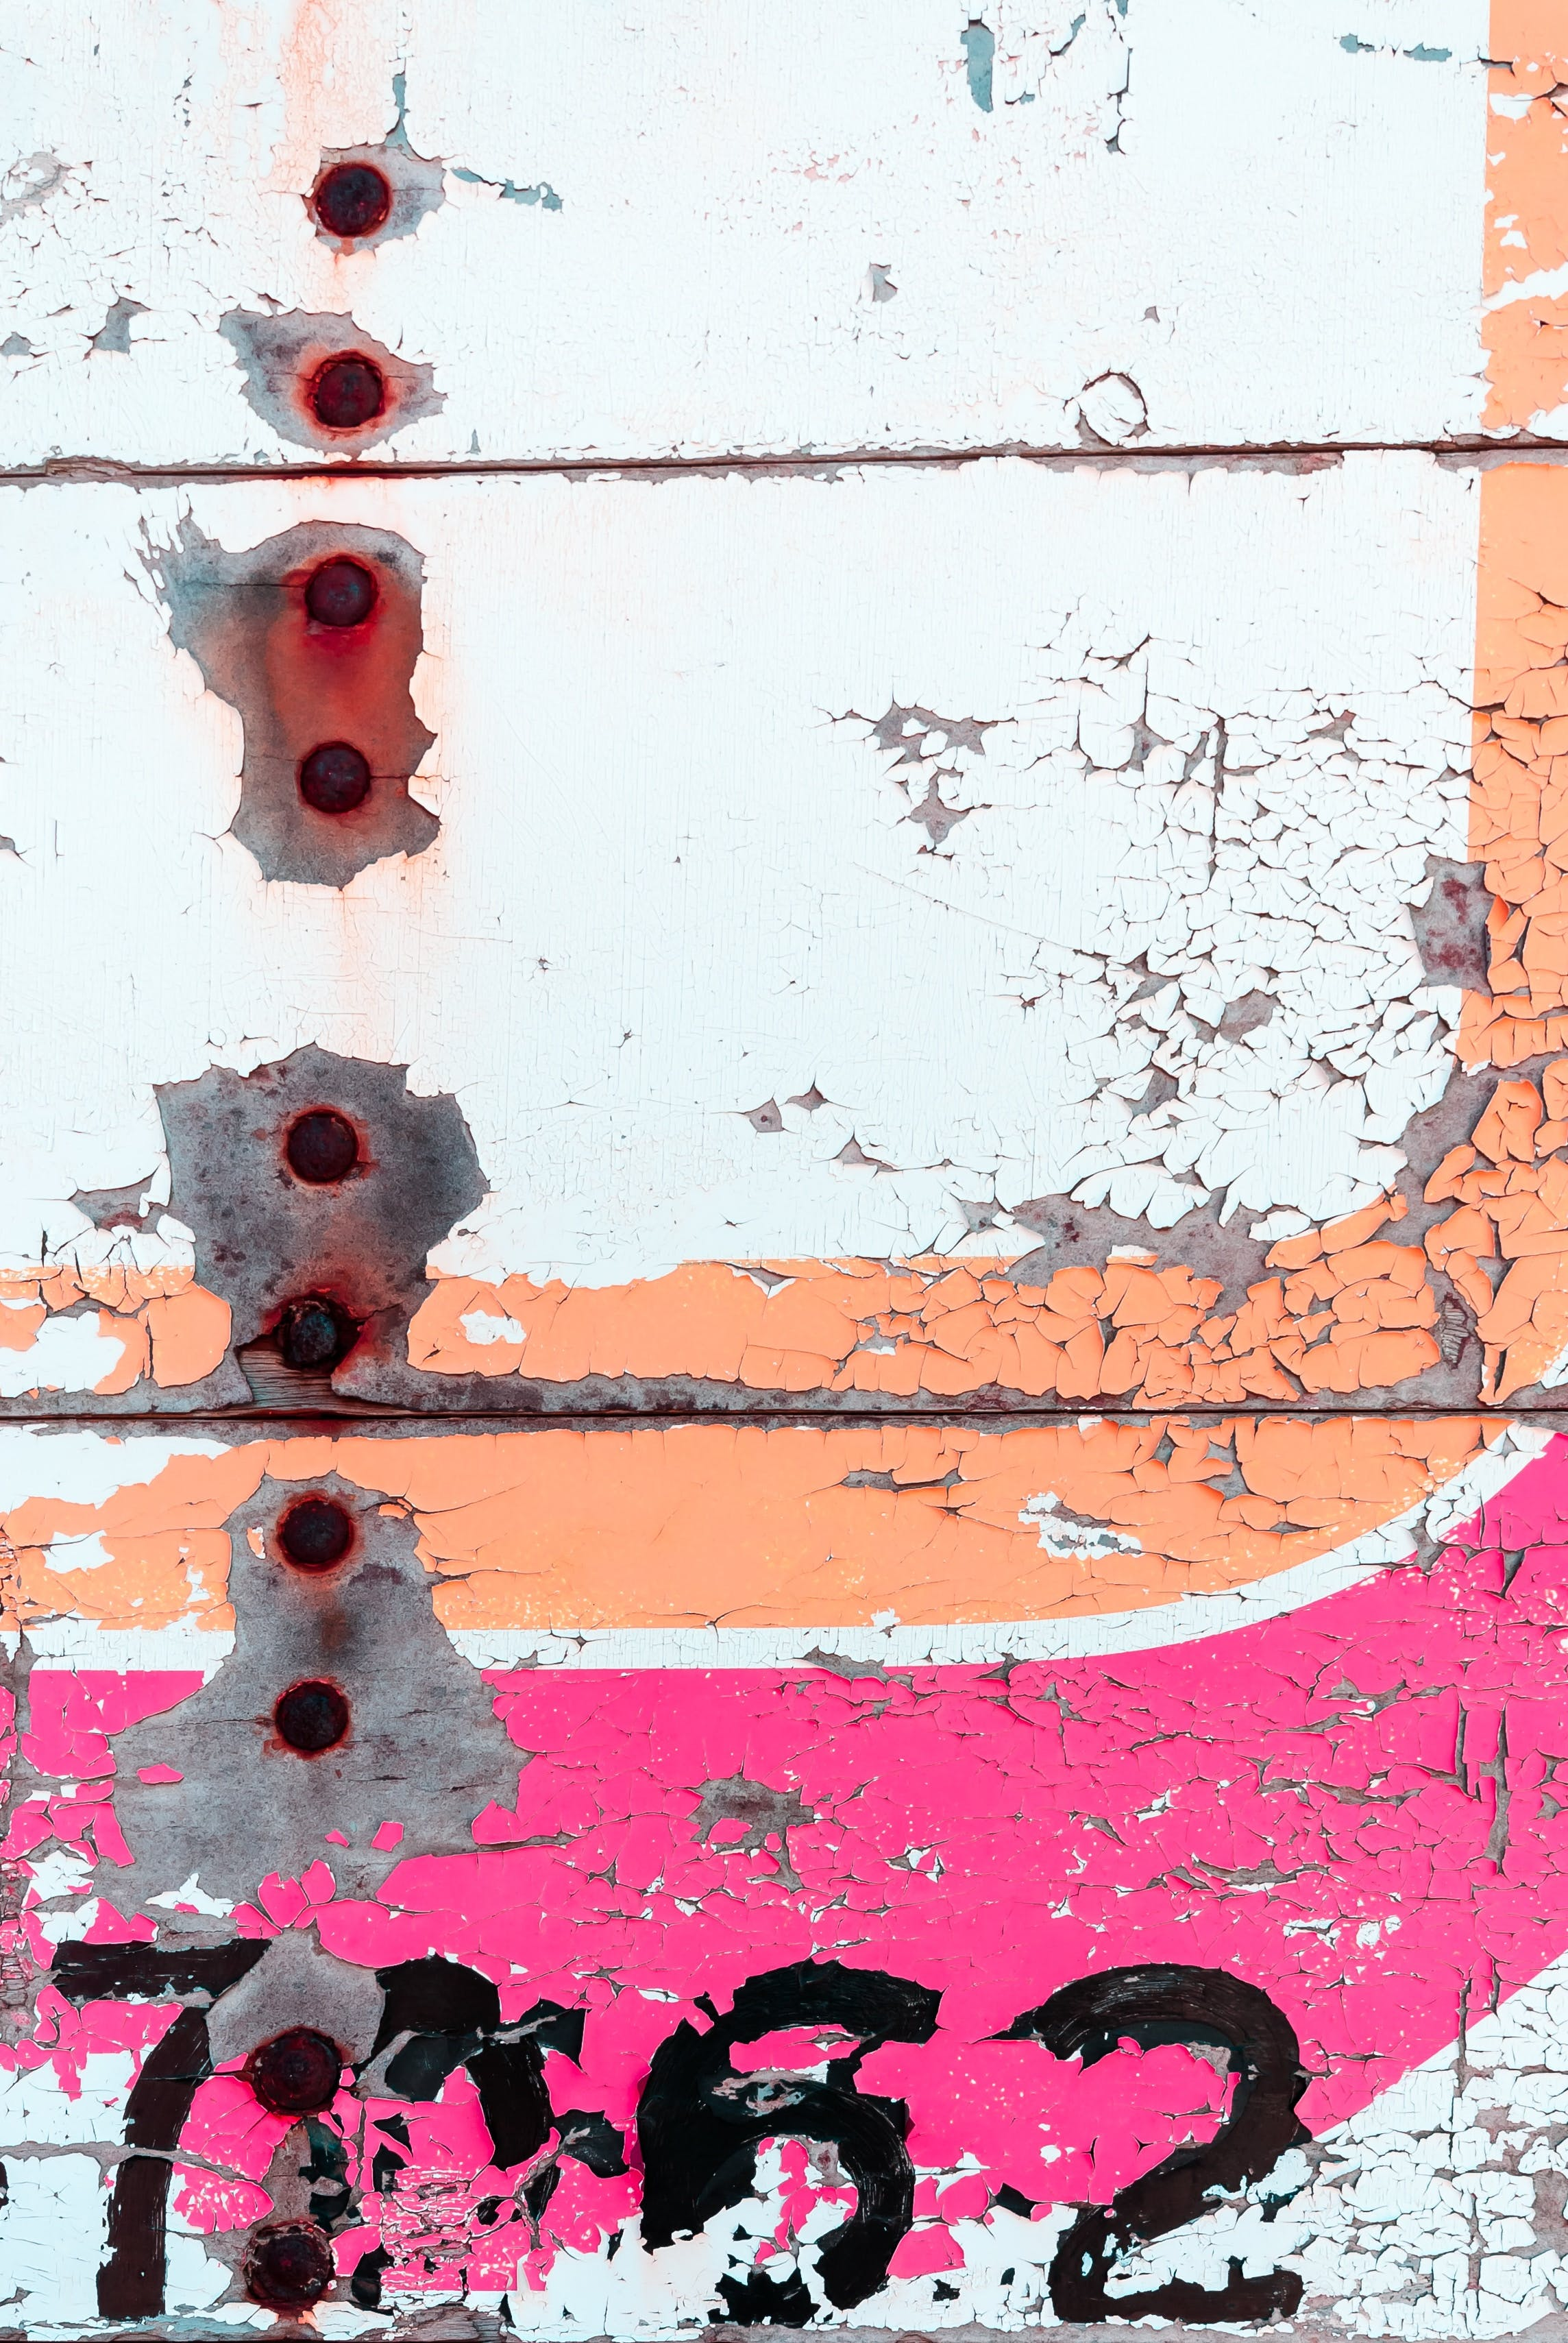 of abstract, abstract photo, grunge, number